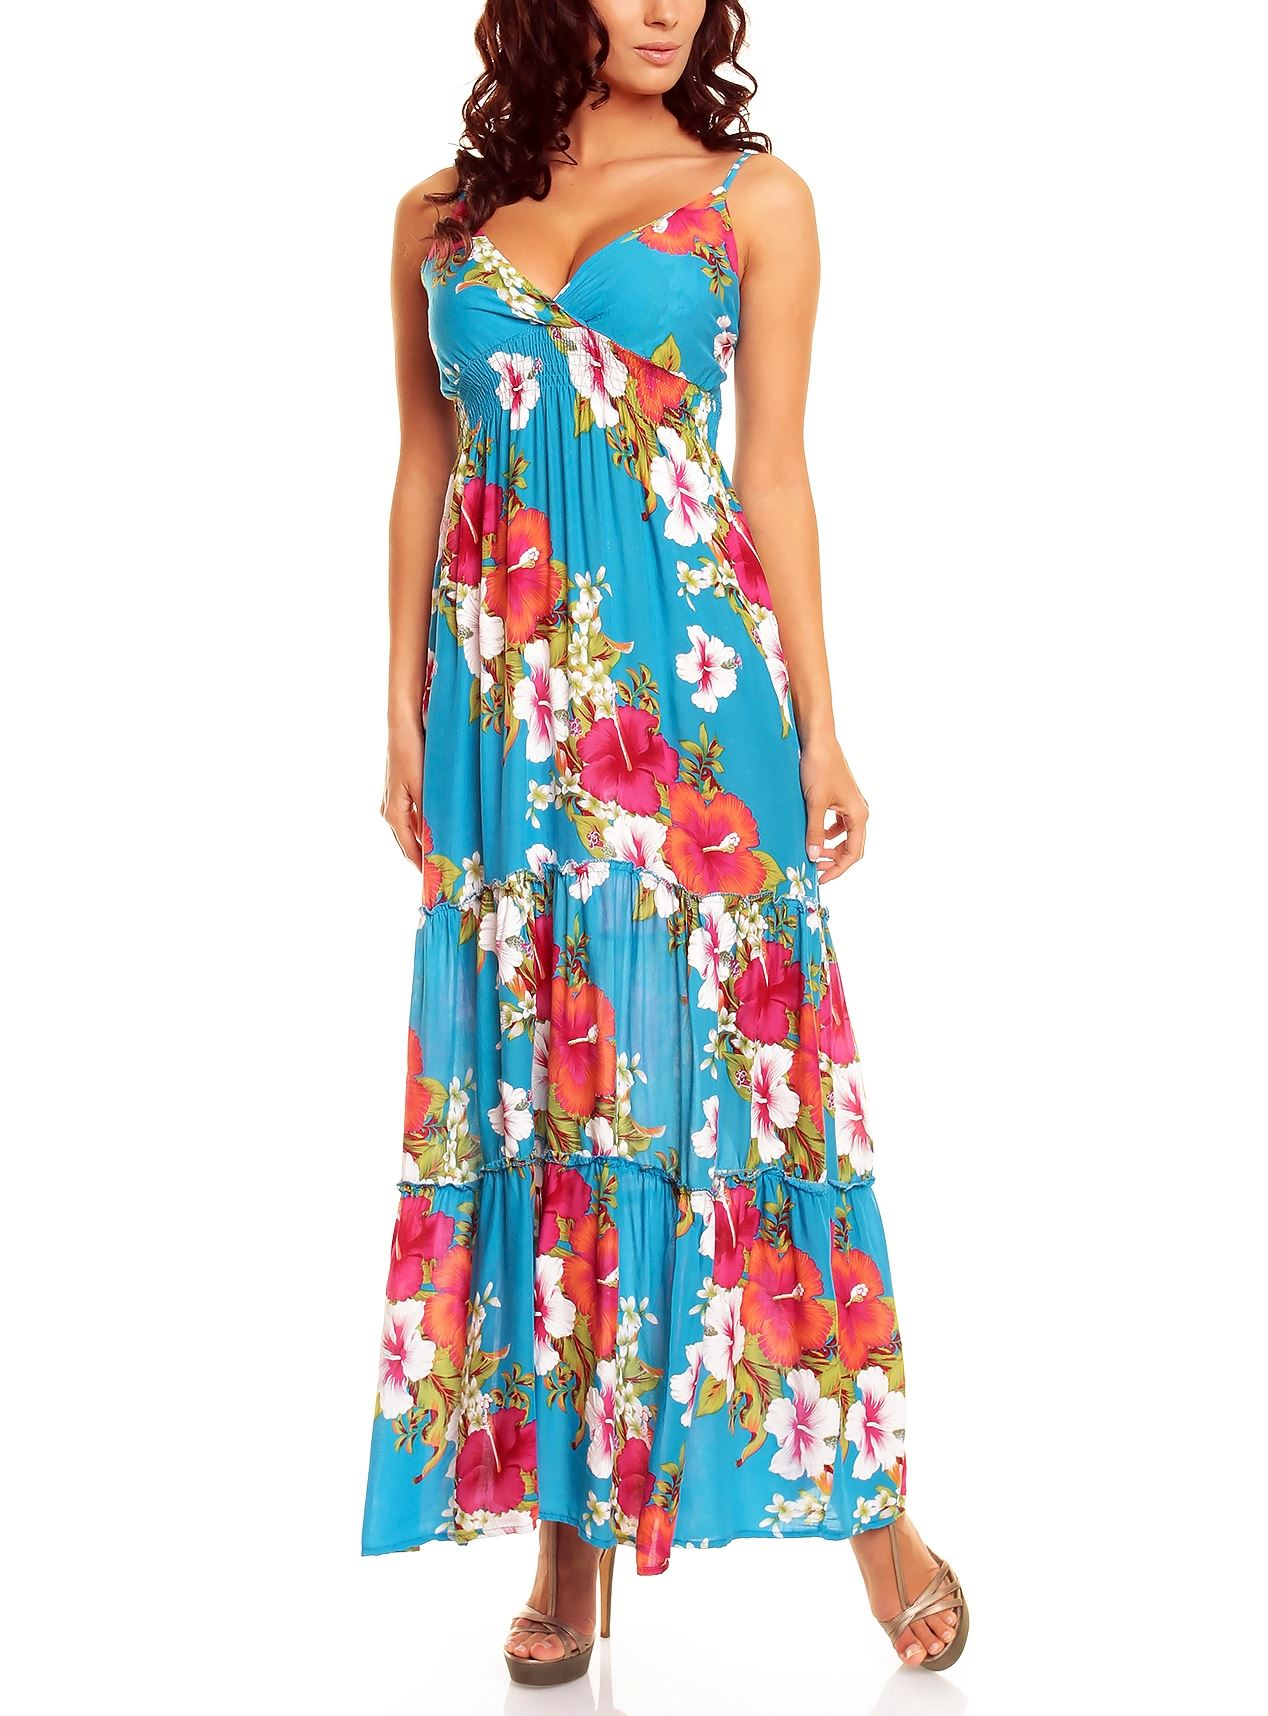 Beach Dress We have a beautiful collection of beach dresses with styles to complement every shape and size at Rigby & Peller. So whether you are planning to be relaxing by the swimming pool or on golden sands by the sea; you will find a piece of luxury swimwear to match your style.